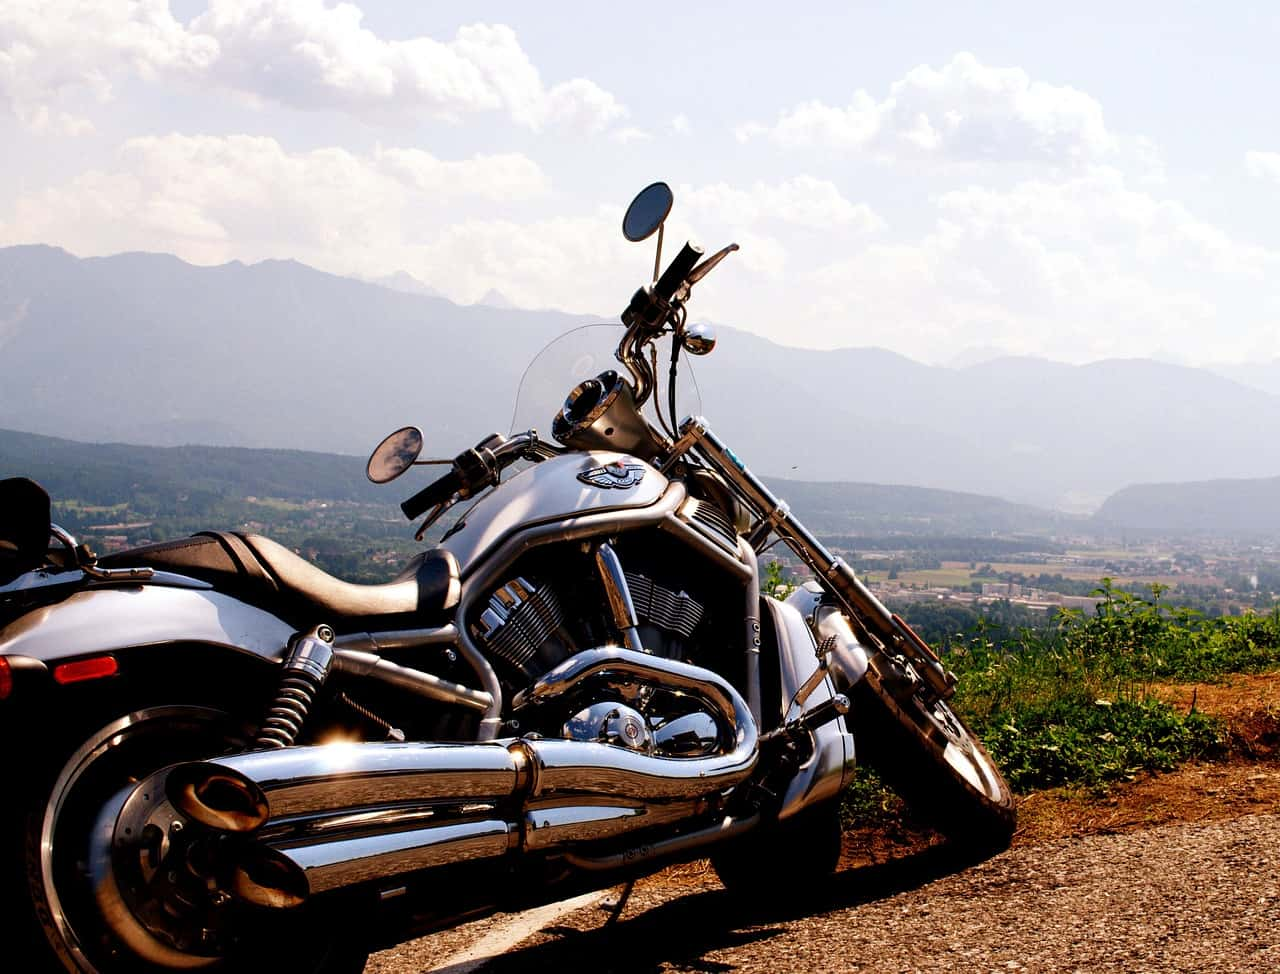 steel exhaust motorcycle mountains